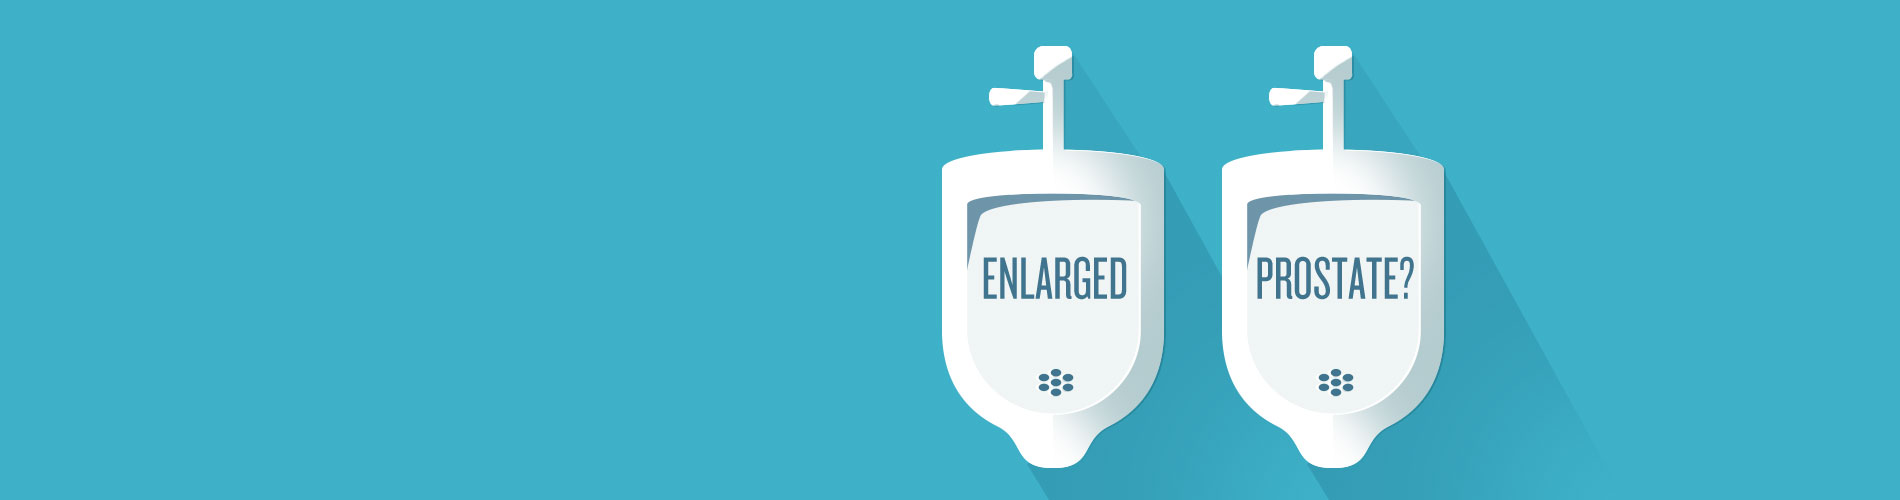 "Illustration of urinals with ""Enlarge Prostate?"" text."